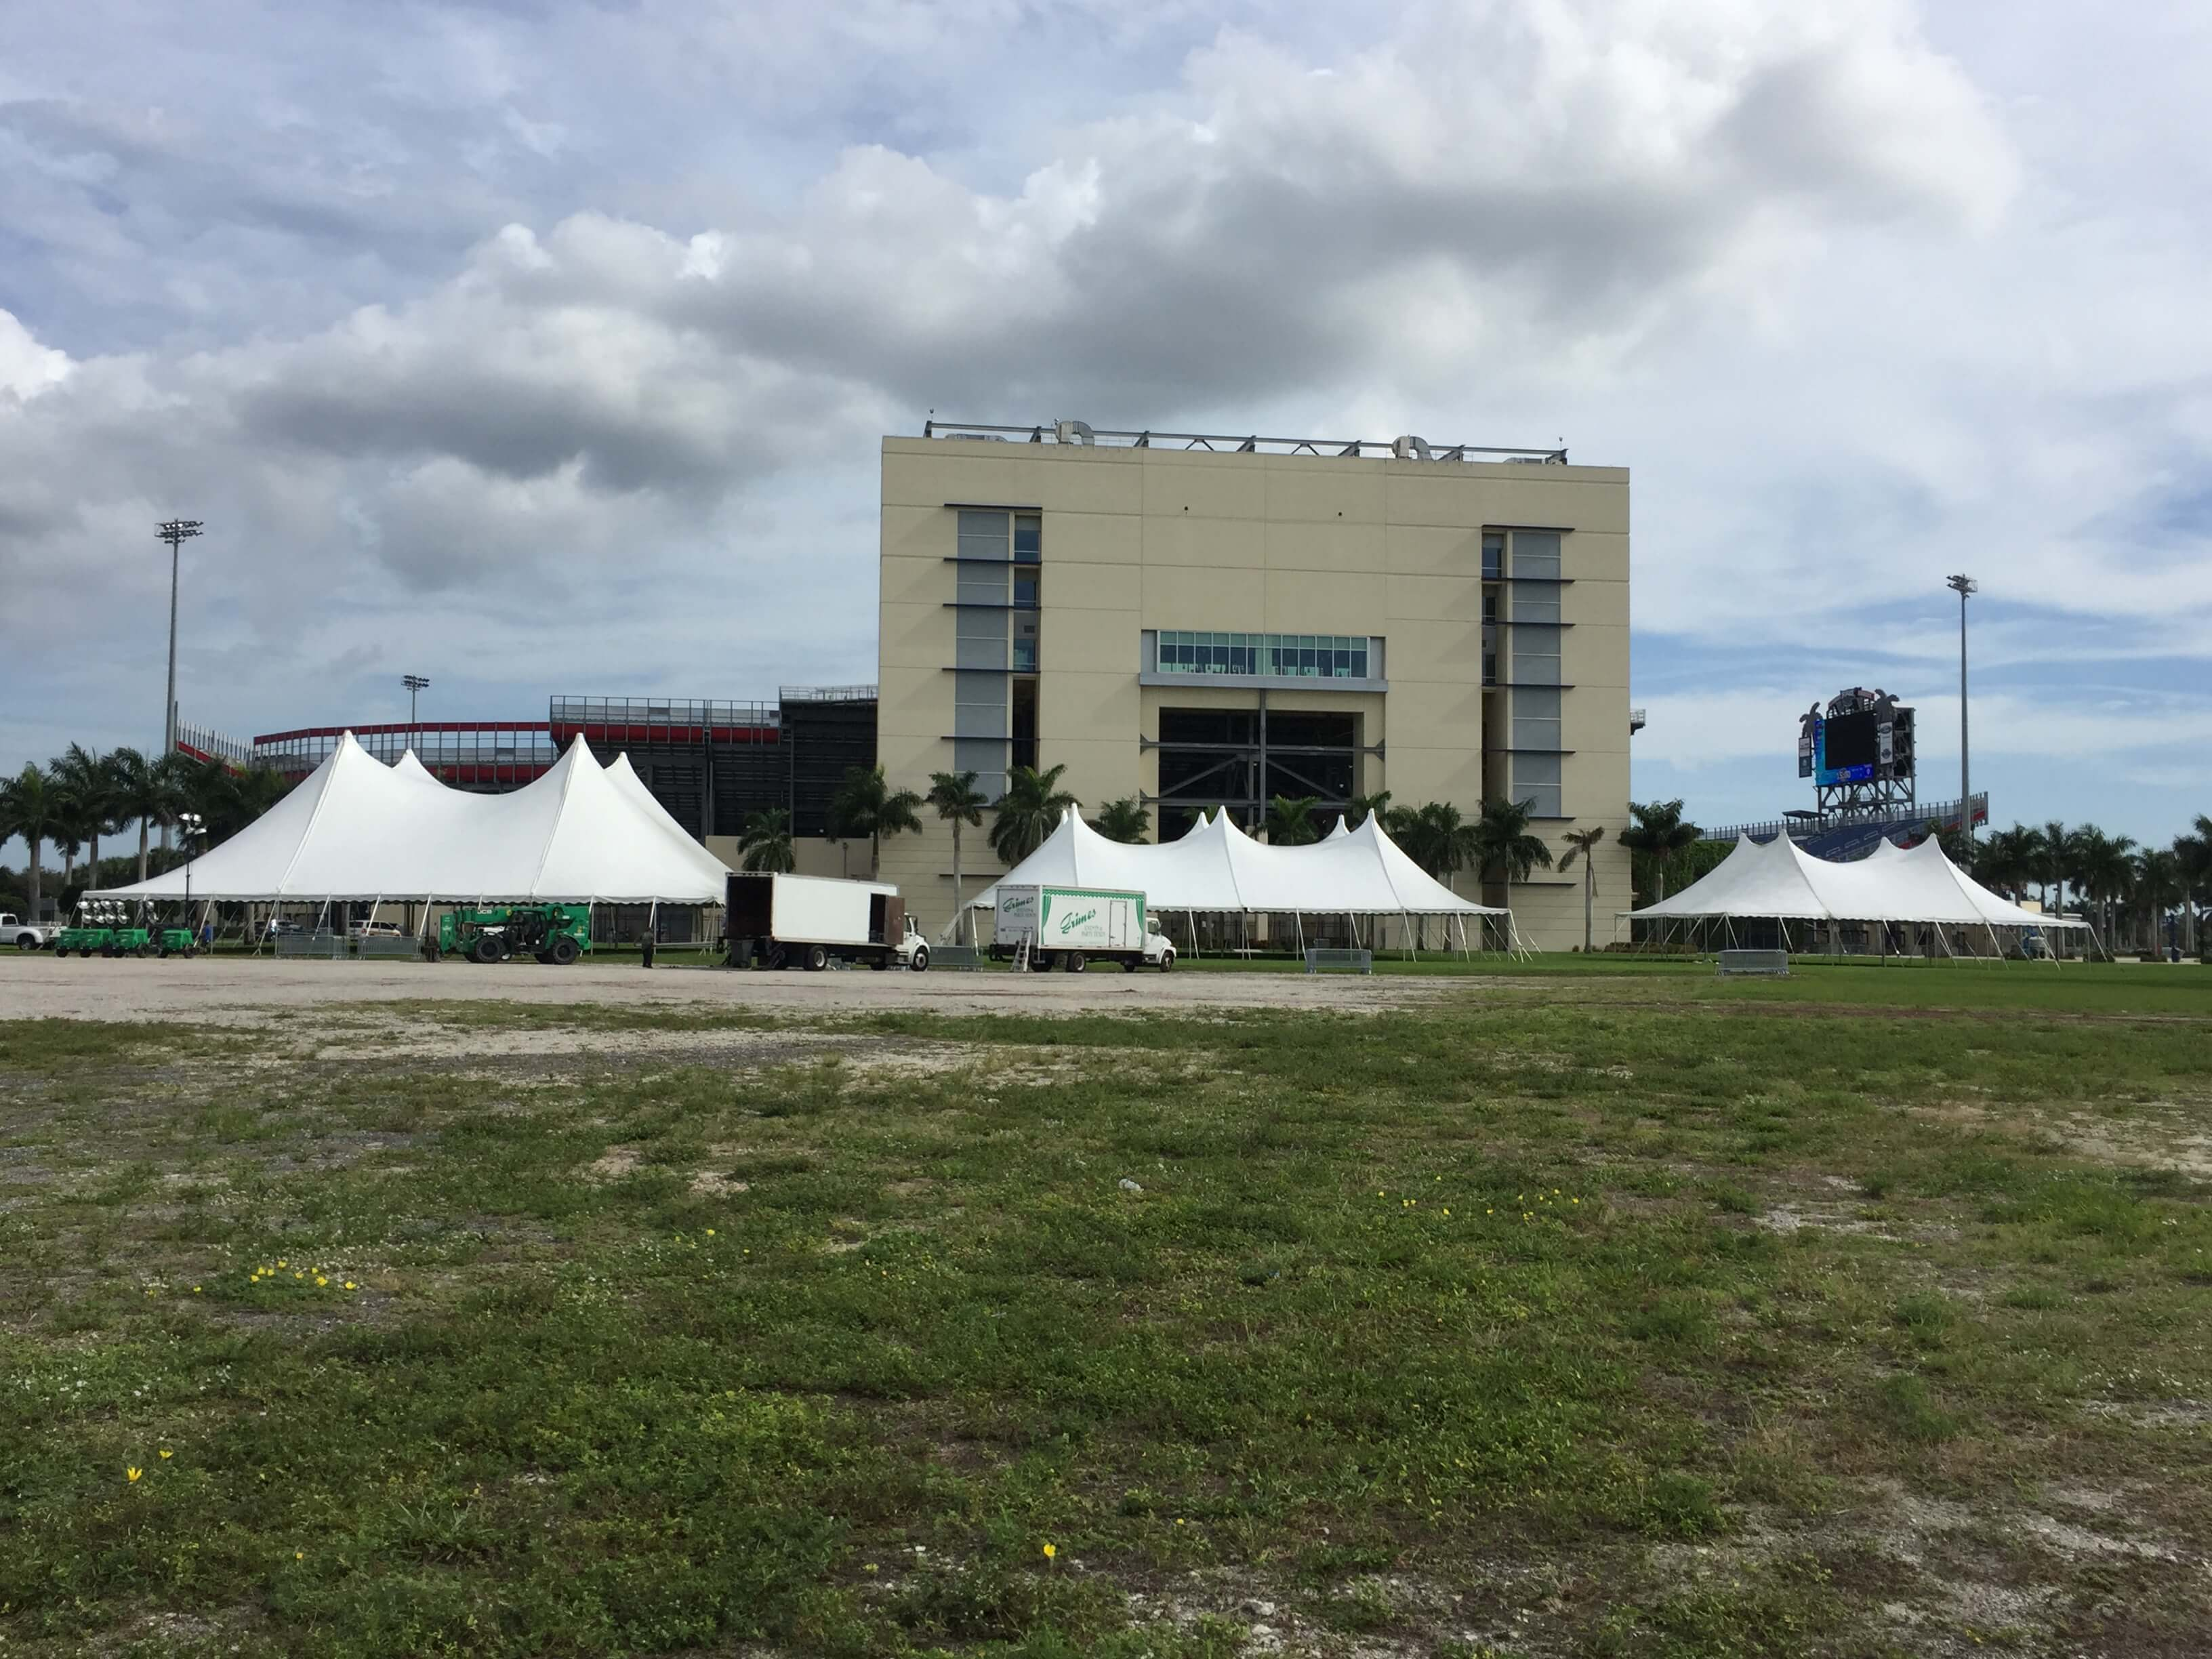 Century Event Tents ... & Party Tent Rentals and Event Tents | Grimes Events u0026 Party Tents